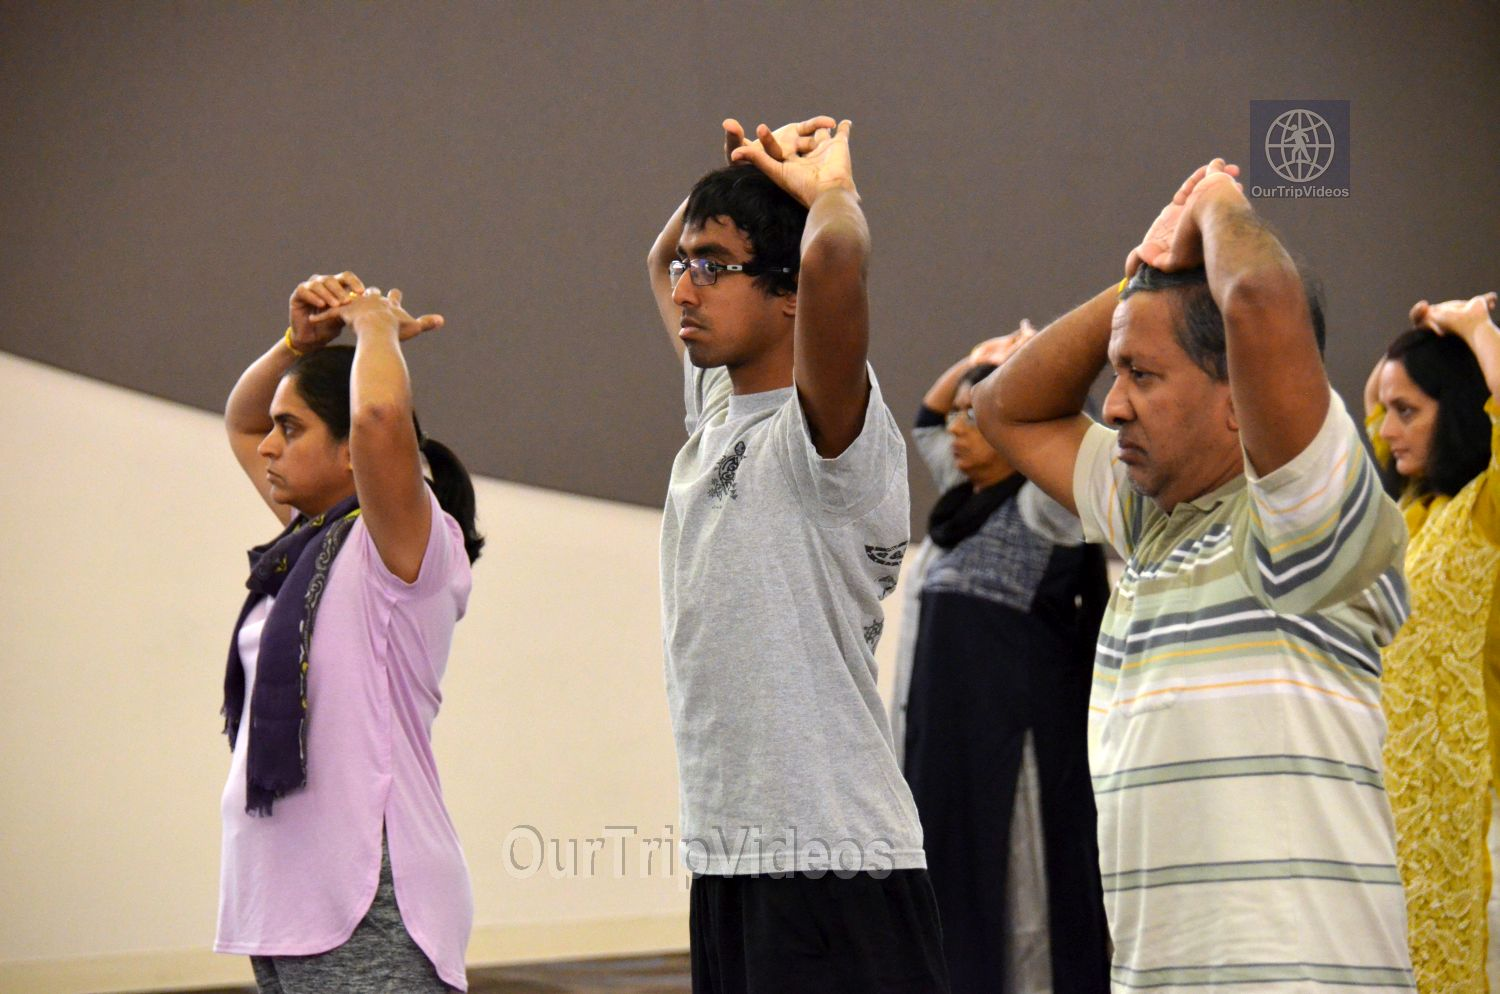 International Yoga Day at ICC, Milpitas, CA, USA - Picture 34 of 50